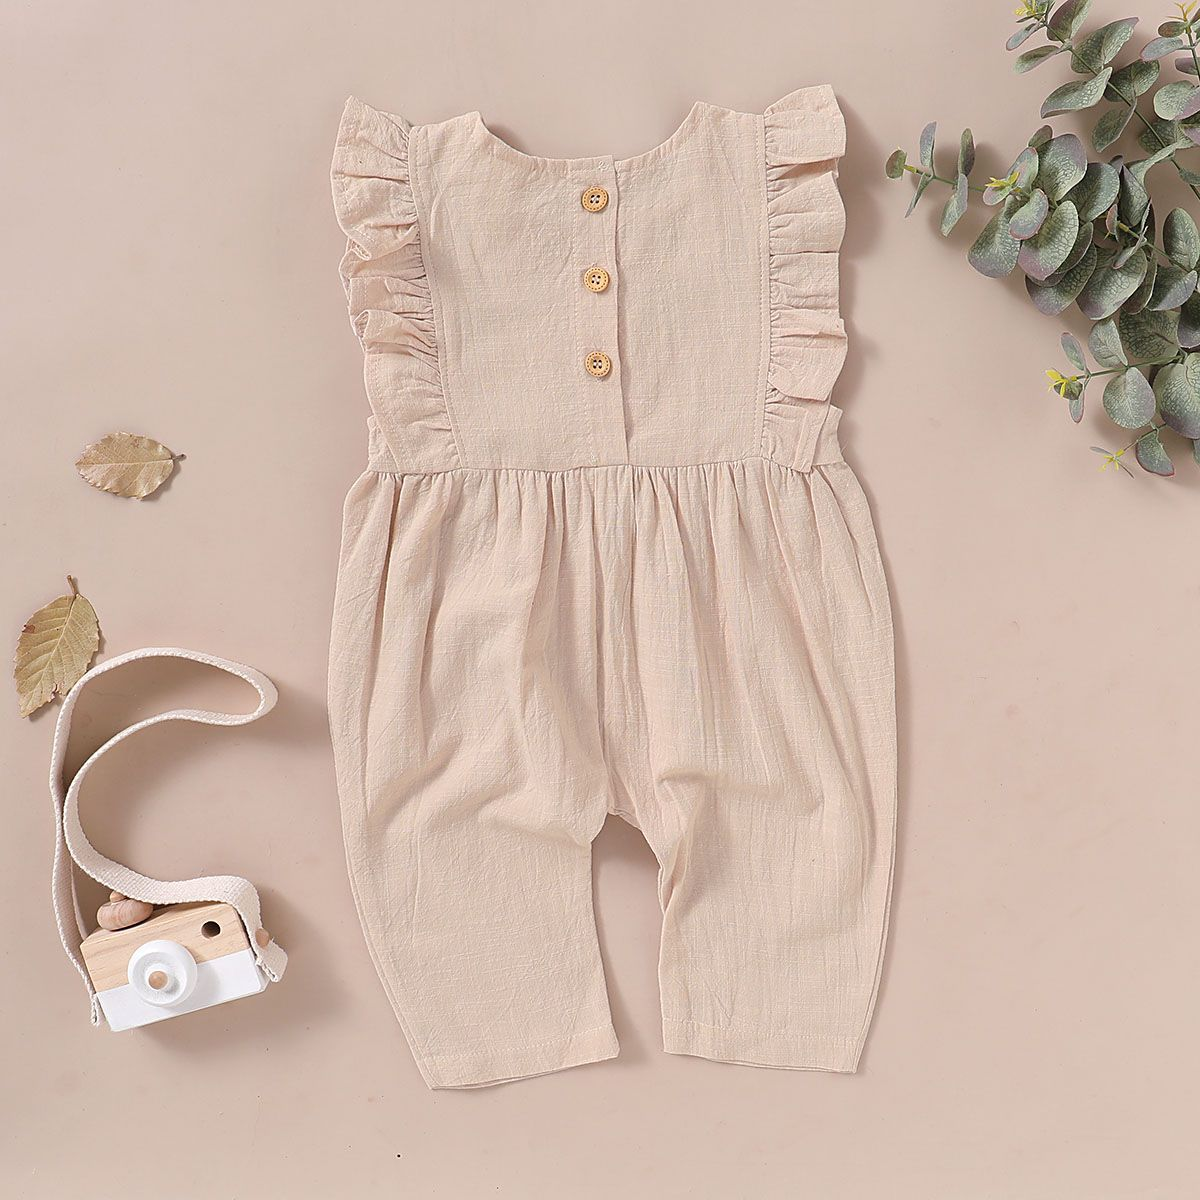 Amanod 2018 Newborn Baby Girl Solid Ruffles Sleeveles Romper Solid Playsuit Clothes Outfits